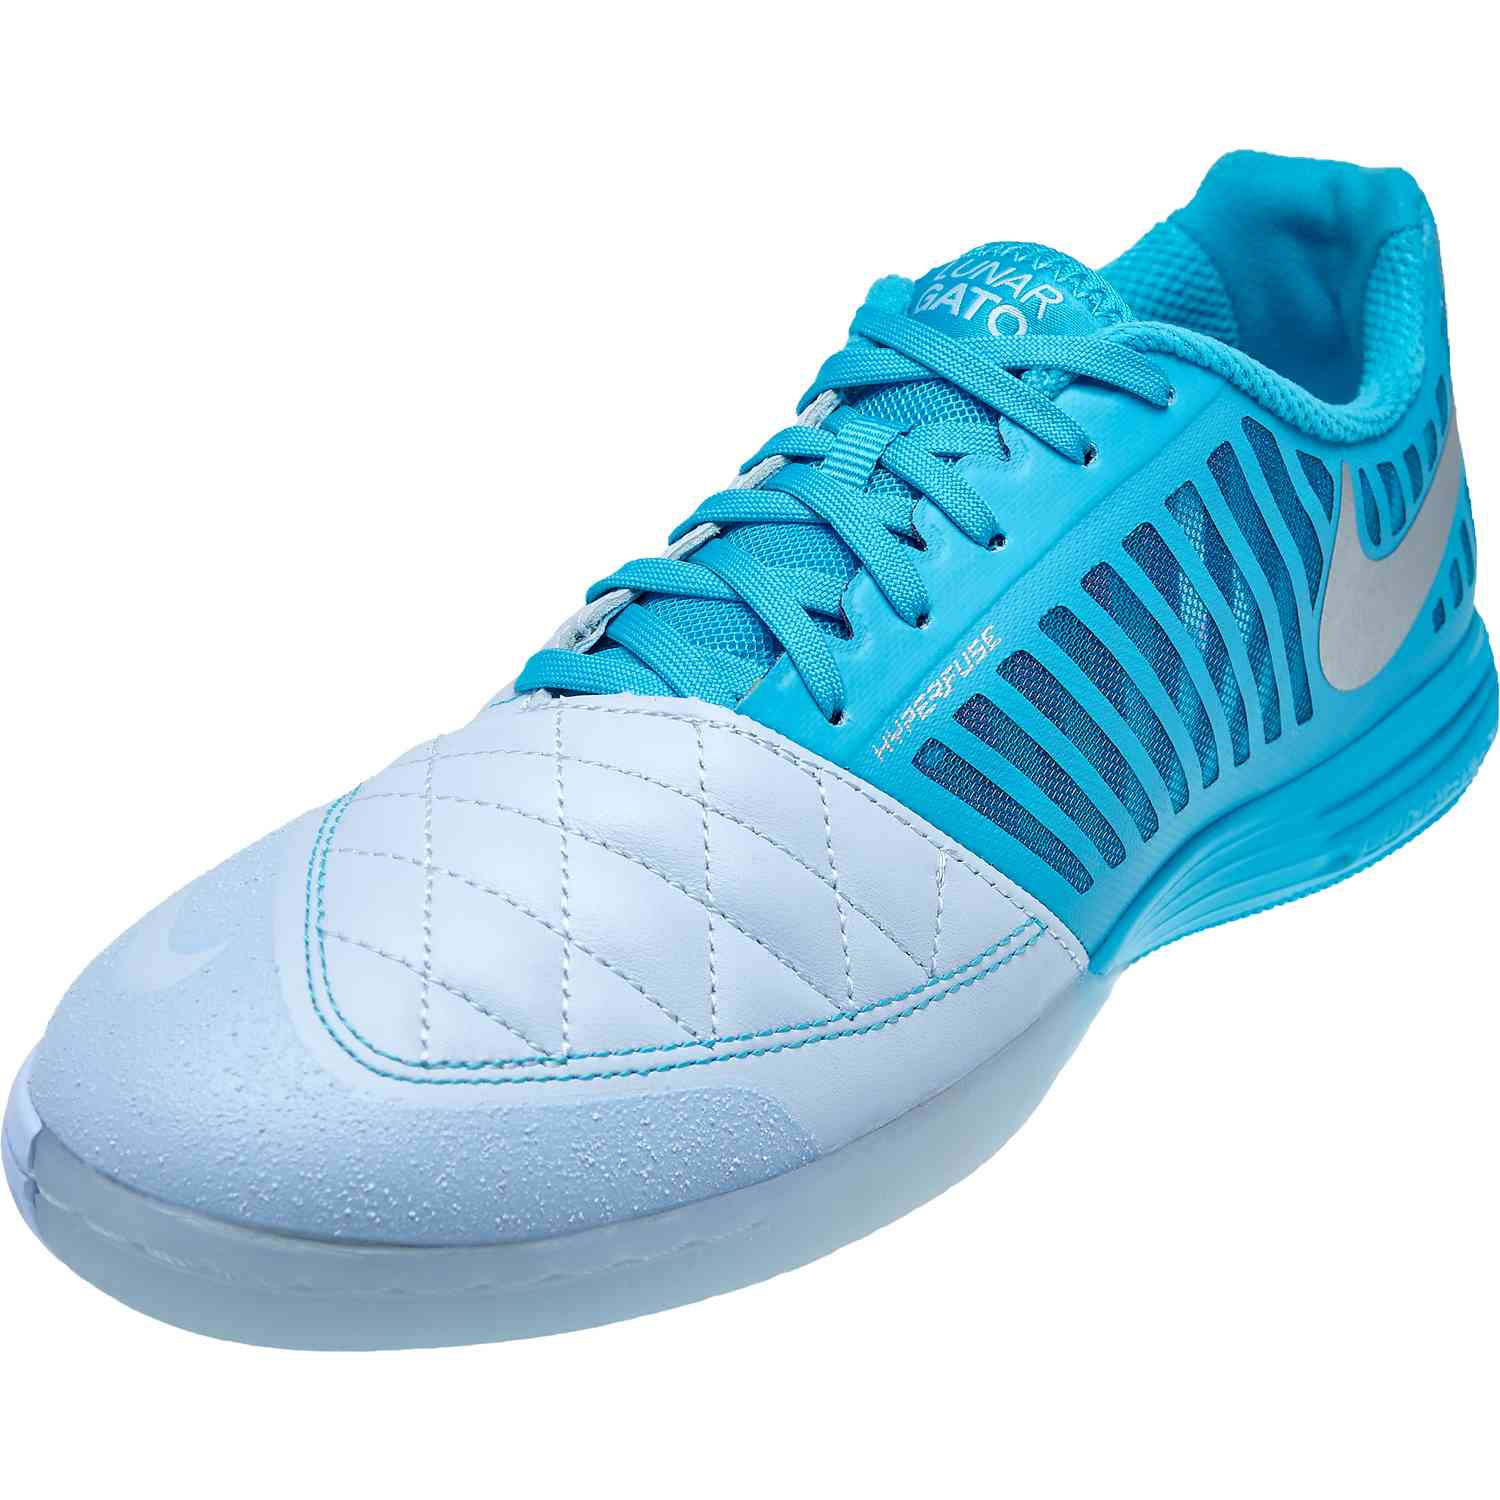 buy popular 27865 bc4d0 Nike Lunargato II – Half Blue Metallic Silver Blue Fury